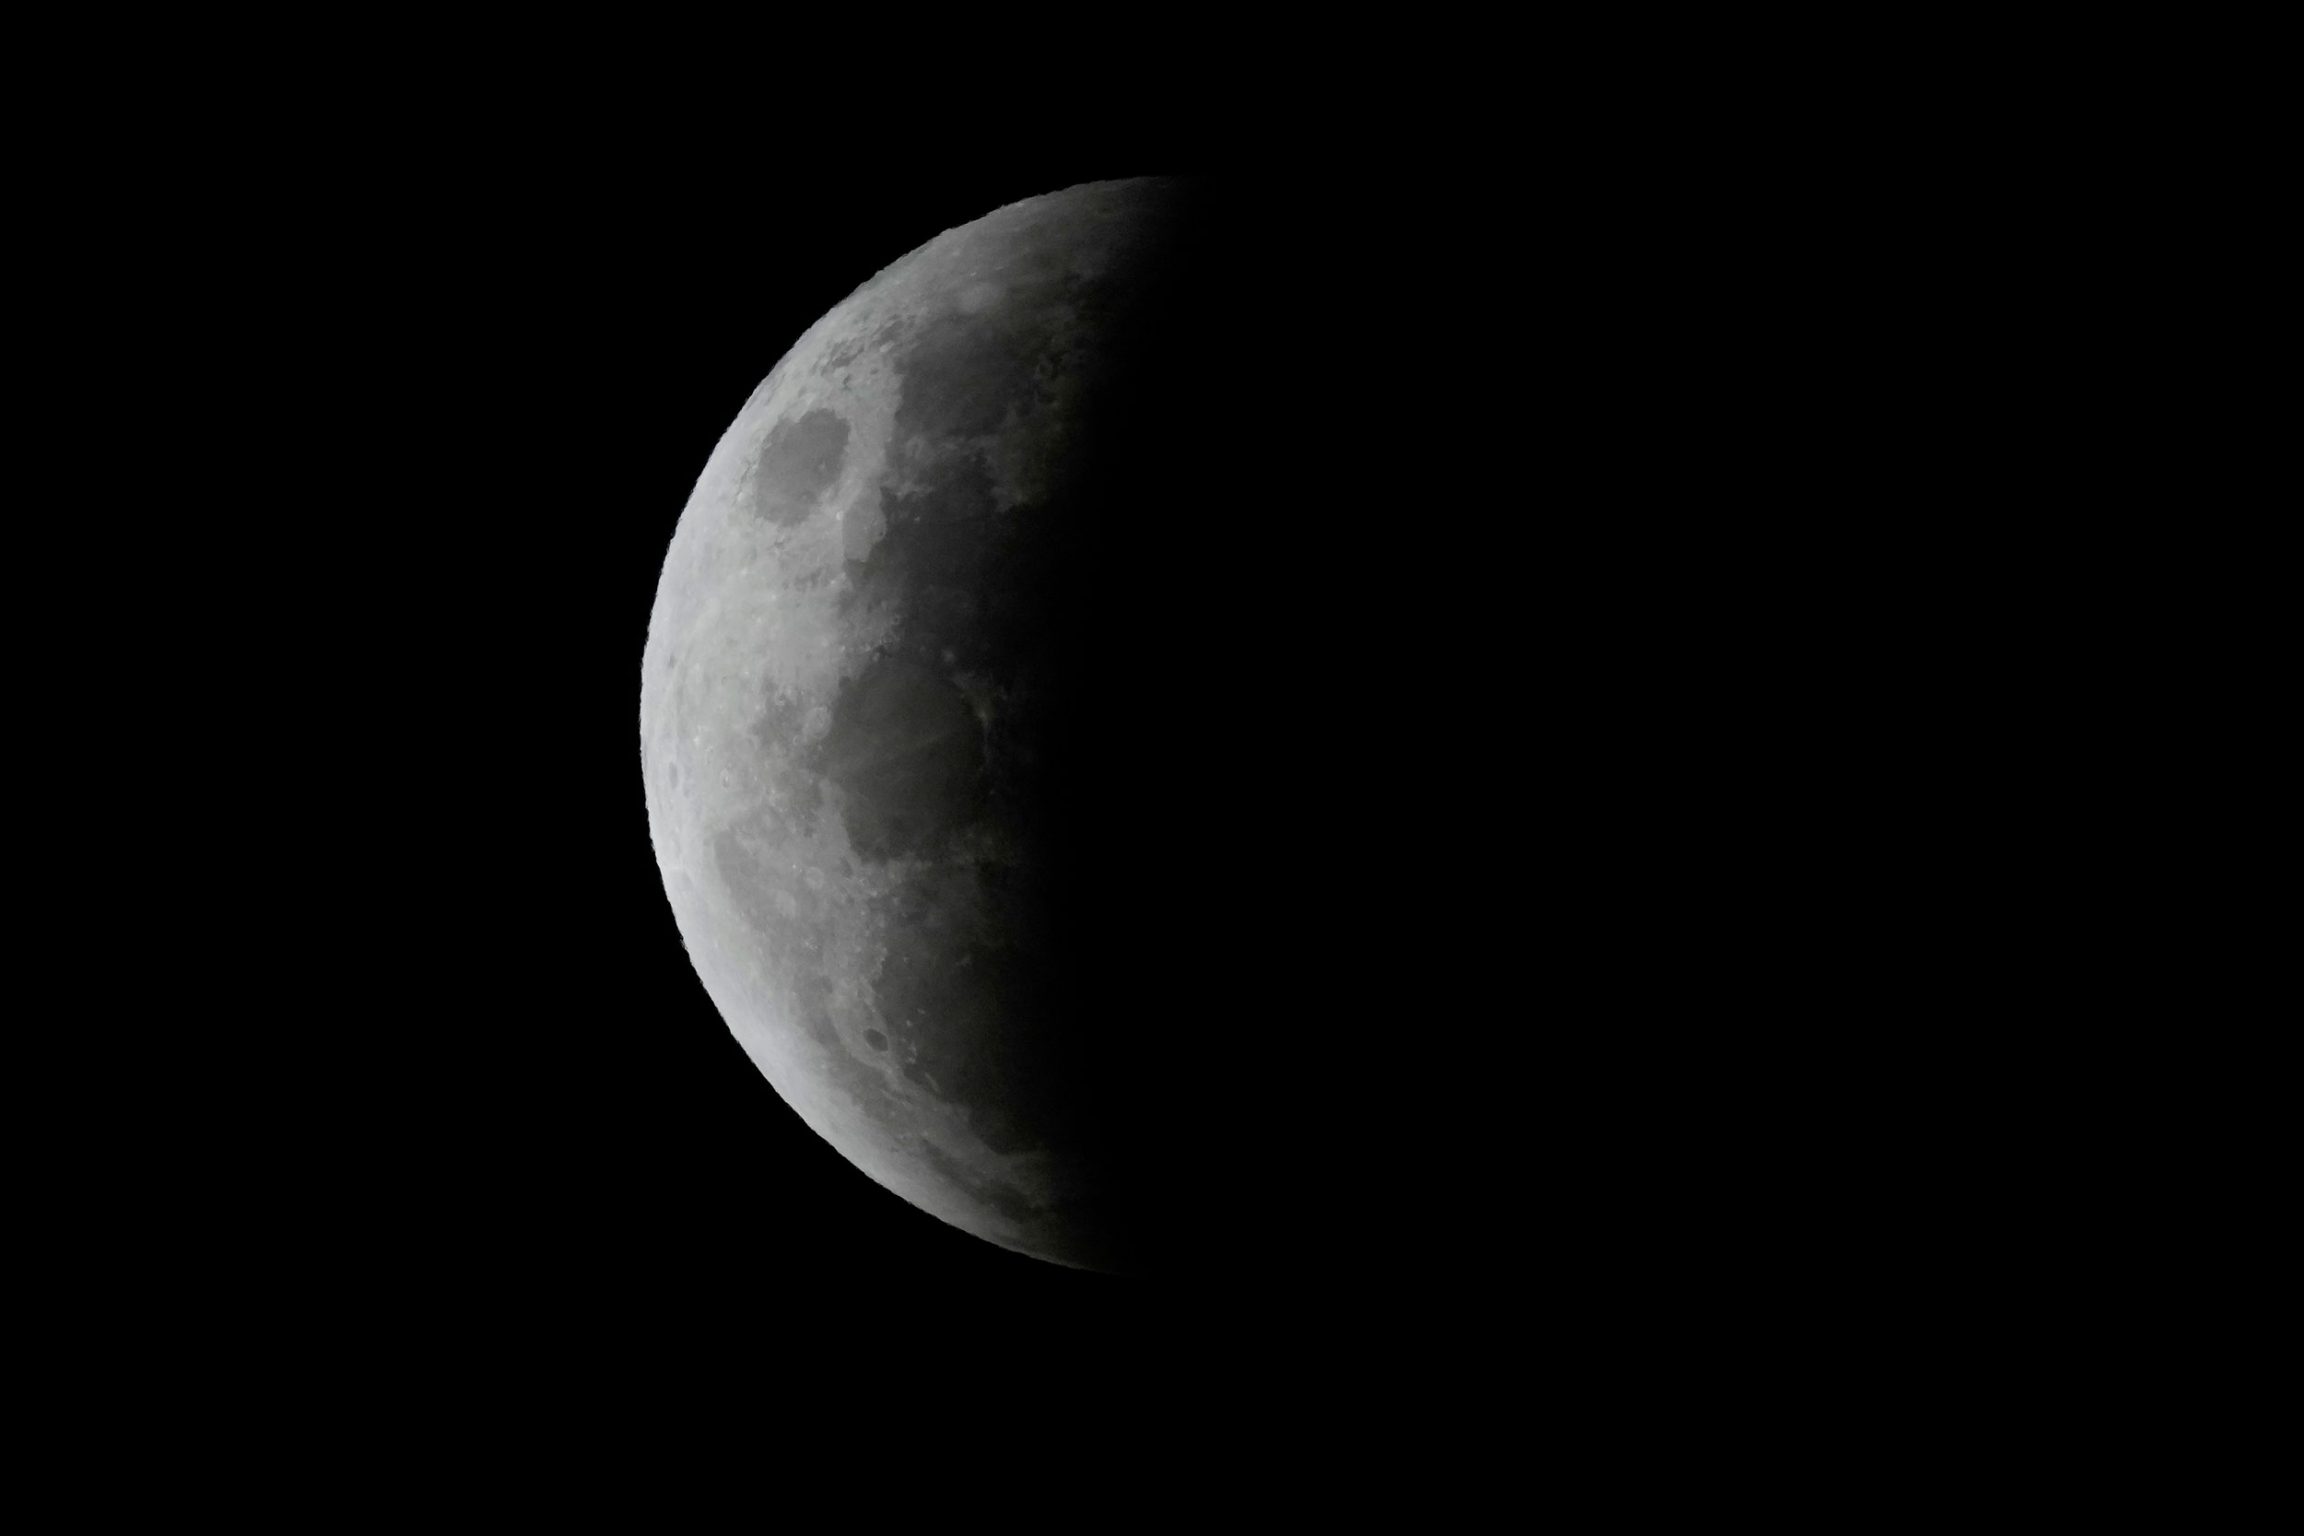 The total lunar eclipse continues with a shadow on about 75% of the moon.